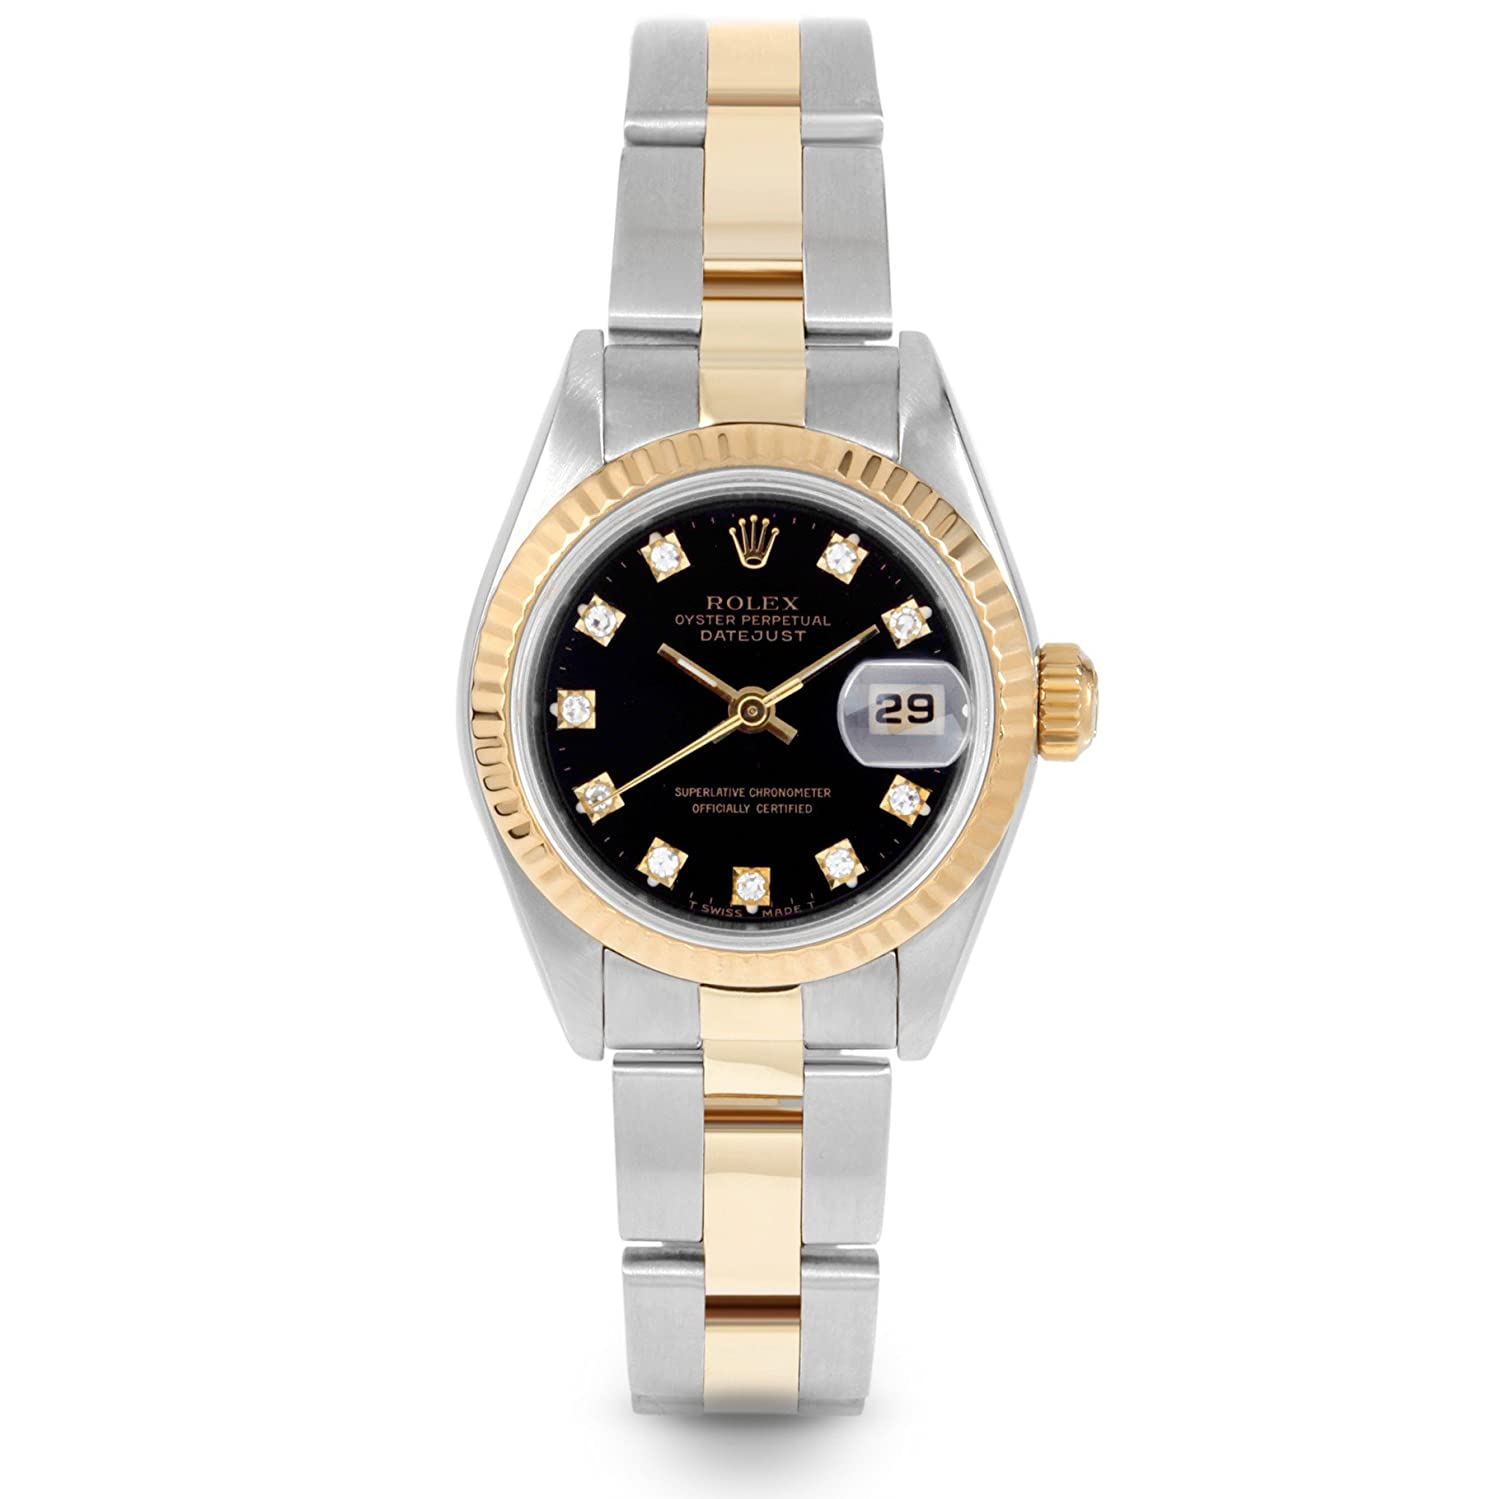 Rolex Ladies 26mm Stainless Steel 18k Yellow Gold Parts Diagram Datejust 69173 Sapphire Crystal Quickset Date Feature Black Diamond Dial Fluted